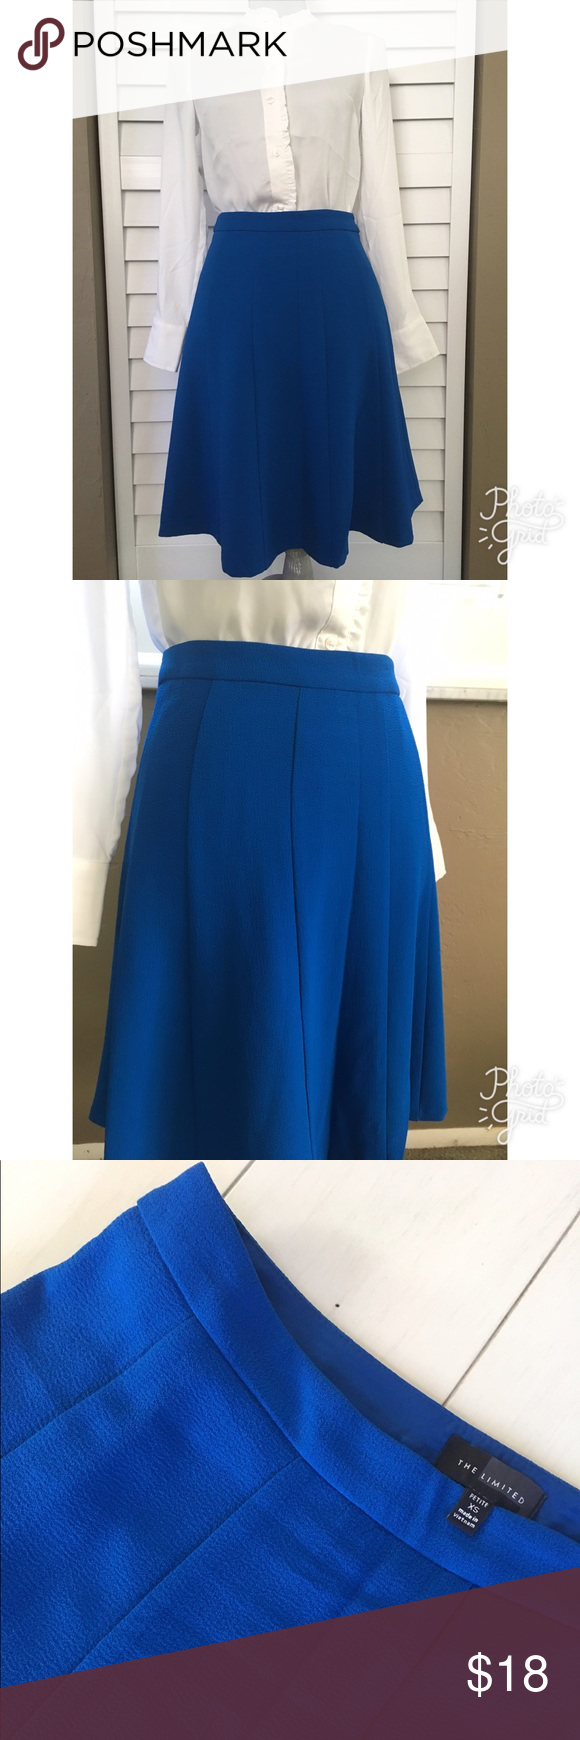 "The Limited A-Line Skirt Blue A-line skirt by The Limited. Button tab closure at the back waist. Fully lined. 98% polyester & 2% spandex - machine wash/dry per tag. Size petite XS - waist 25"" - length is 21 inches. The Limited Skirts A-Line or Full"